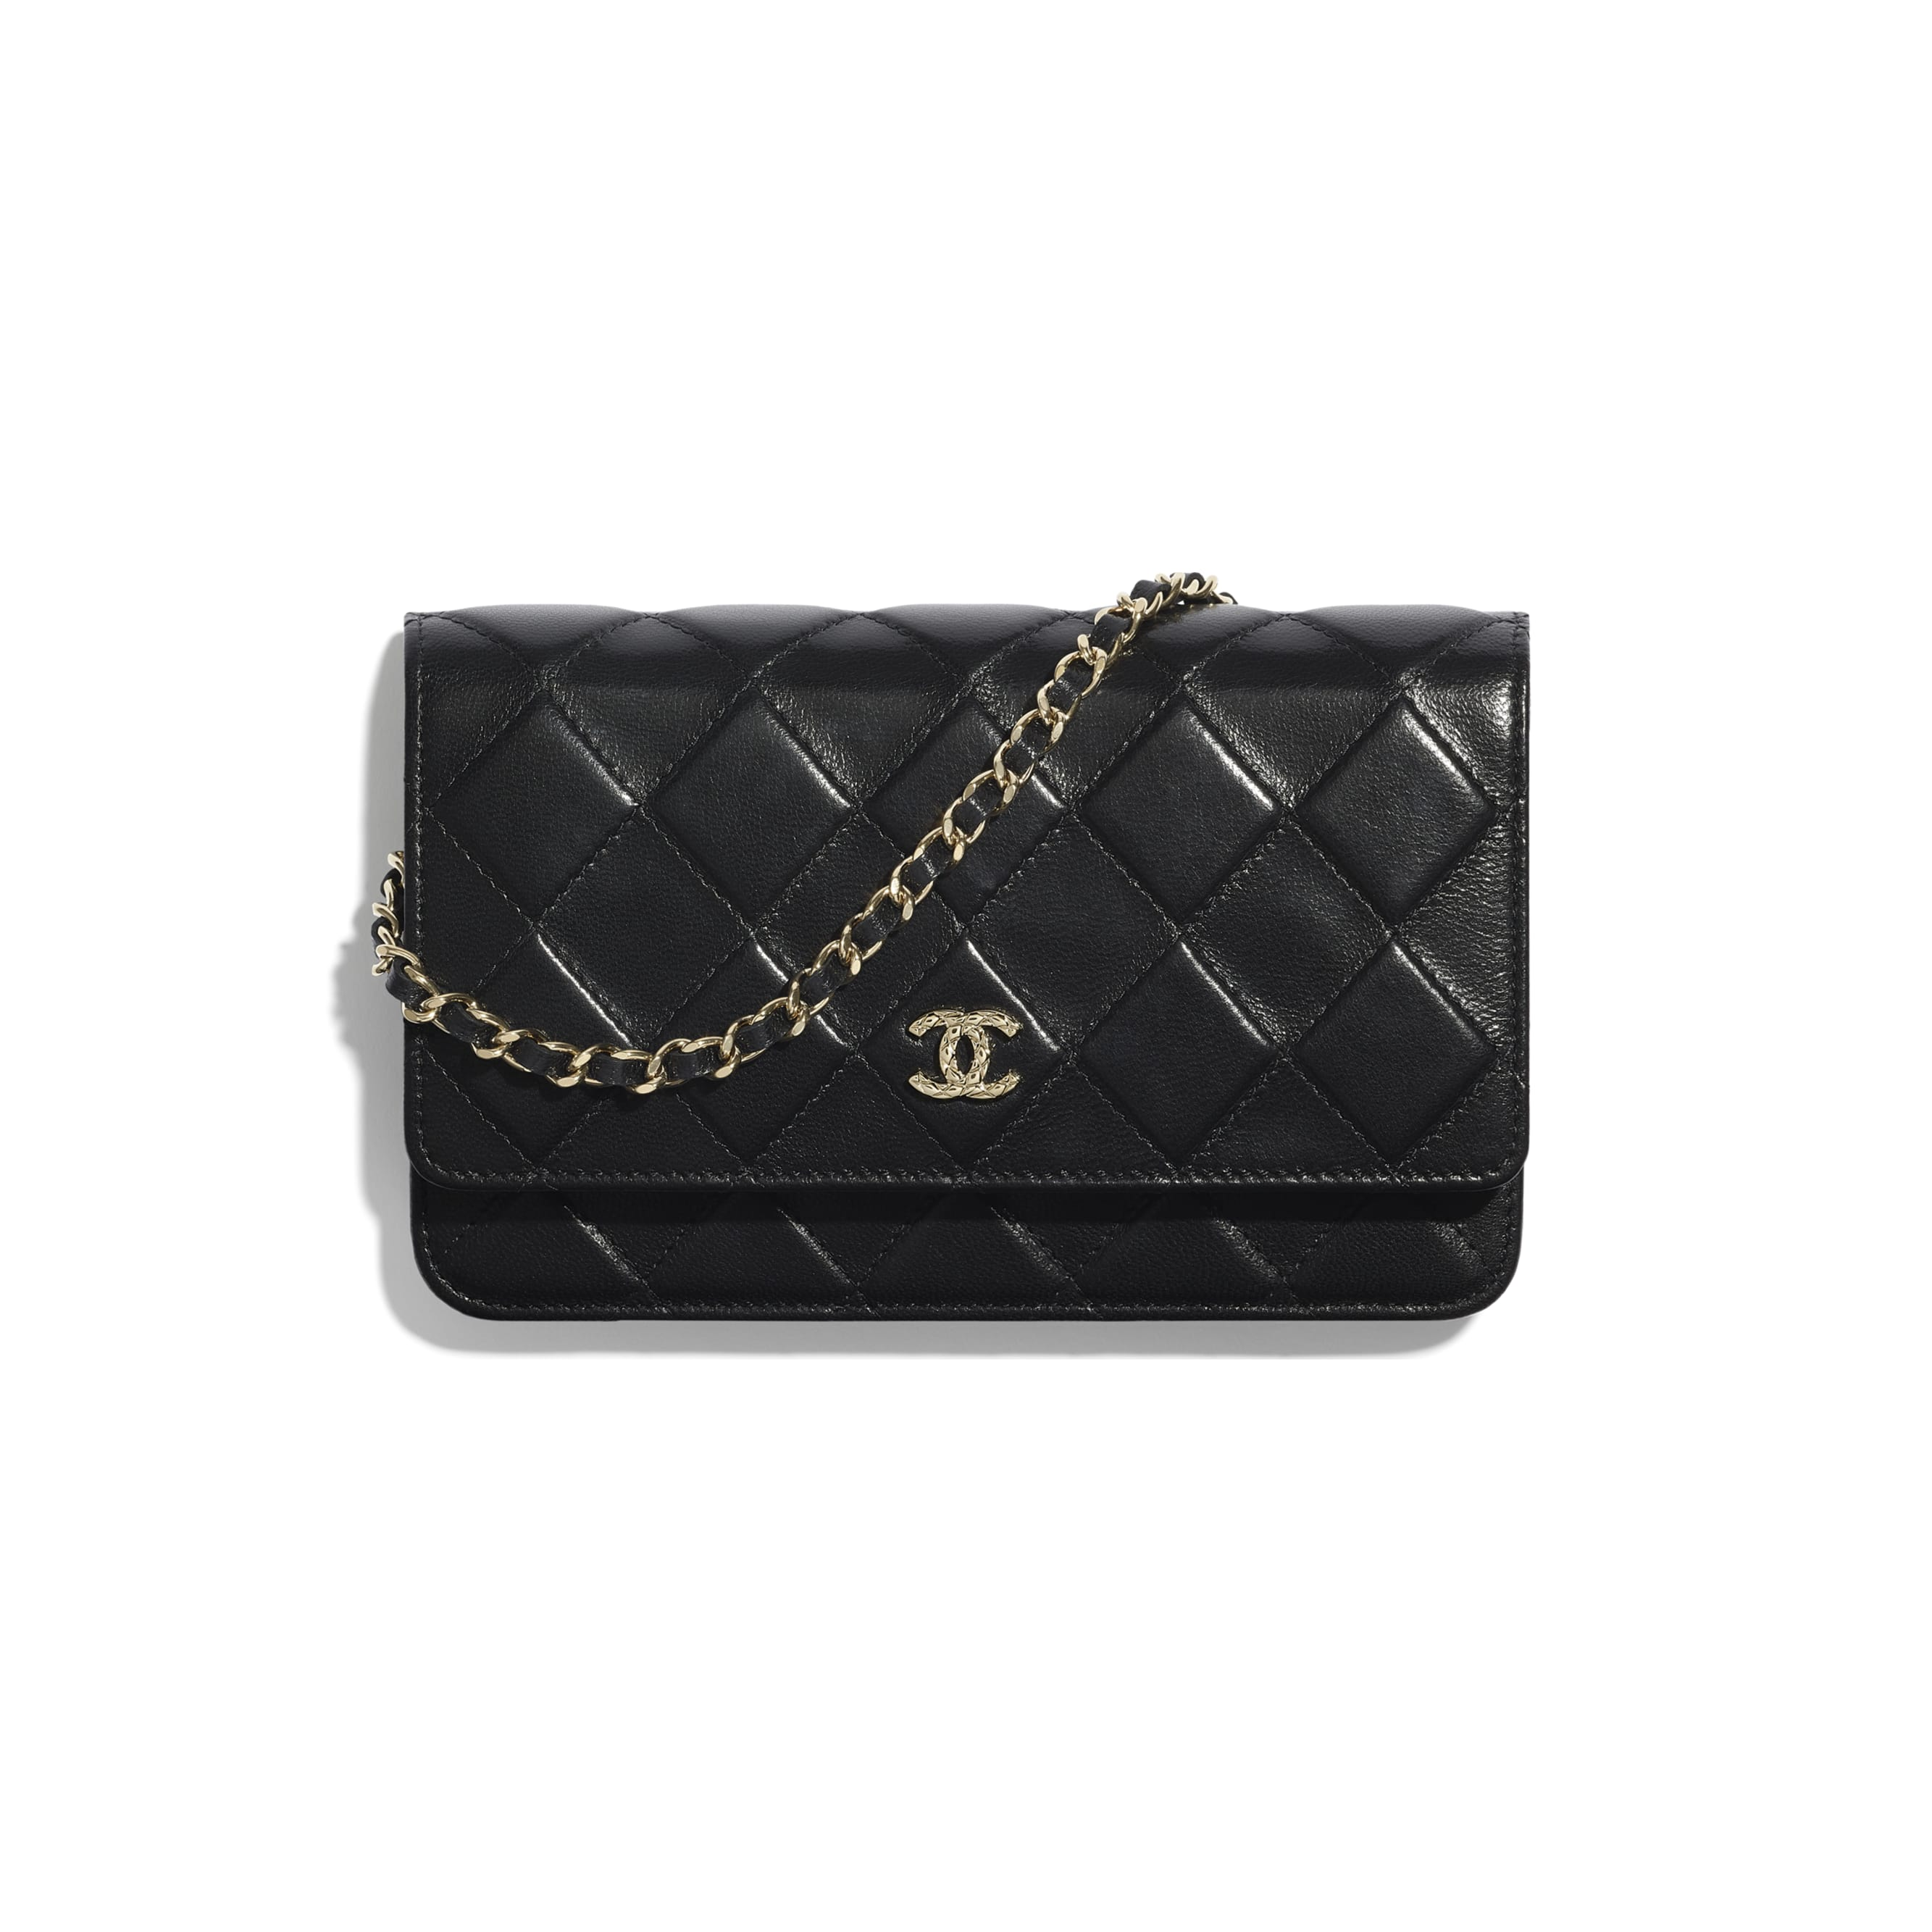 Wallet On Chain - Black - Shiny Crumpled Goatskin & Gold-Tone Metal - CHANEL - Default view - see standard sized version